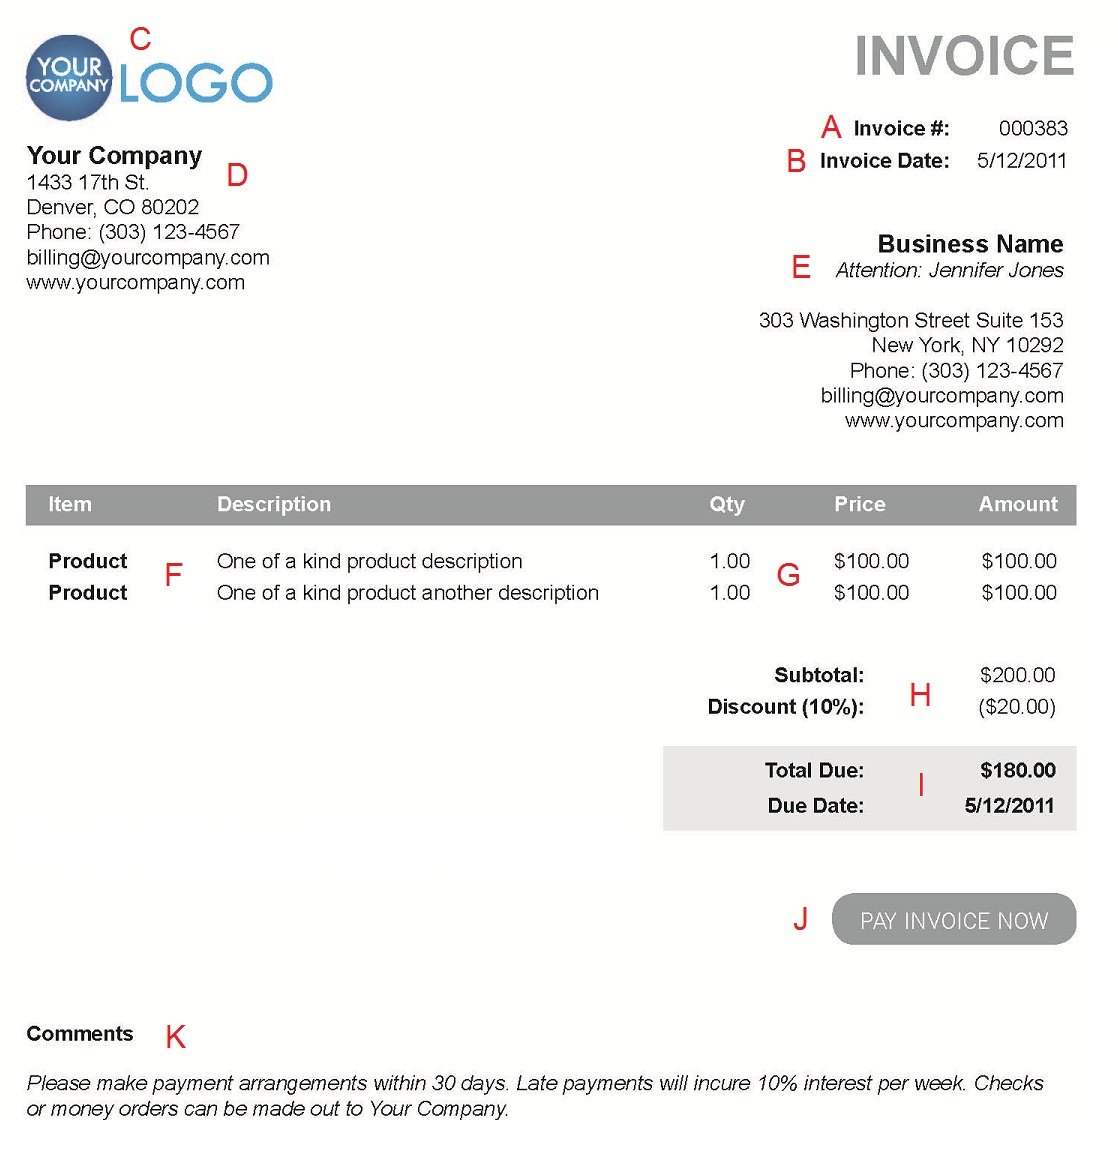 Offtheshelfus  Splendid The  Different Sections Of An Electronic Payment Invoice With Fair A  With Divine Invoice And Receipt Software Also Invoice Fedex In Addition Debit Note And Invoice And How To Make A Invoice On Word As Well As Invoice Number Format Additionally Invoice Inventory From Paysimplecom With Offtheshelfus  Fair The  Different Sections Of An Electronic Payment Invoice With Divine A  And Splendid Invoice And Receipt Software Also Invoice Fedex In Addition Debit Note And Invoice From Paysimplecom